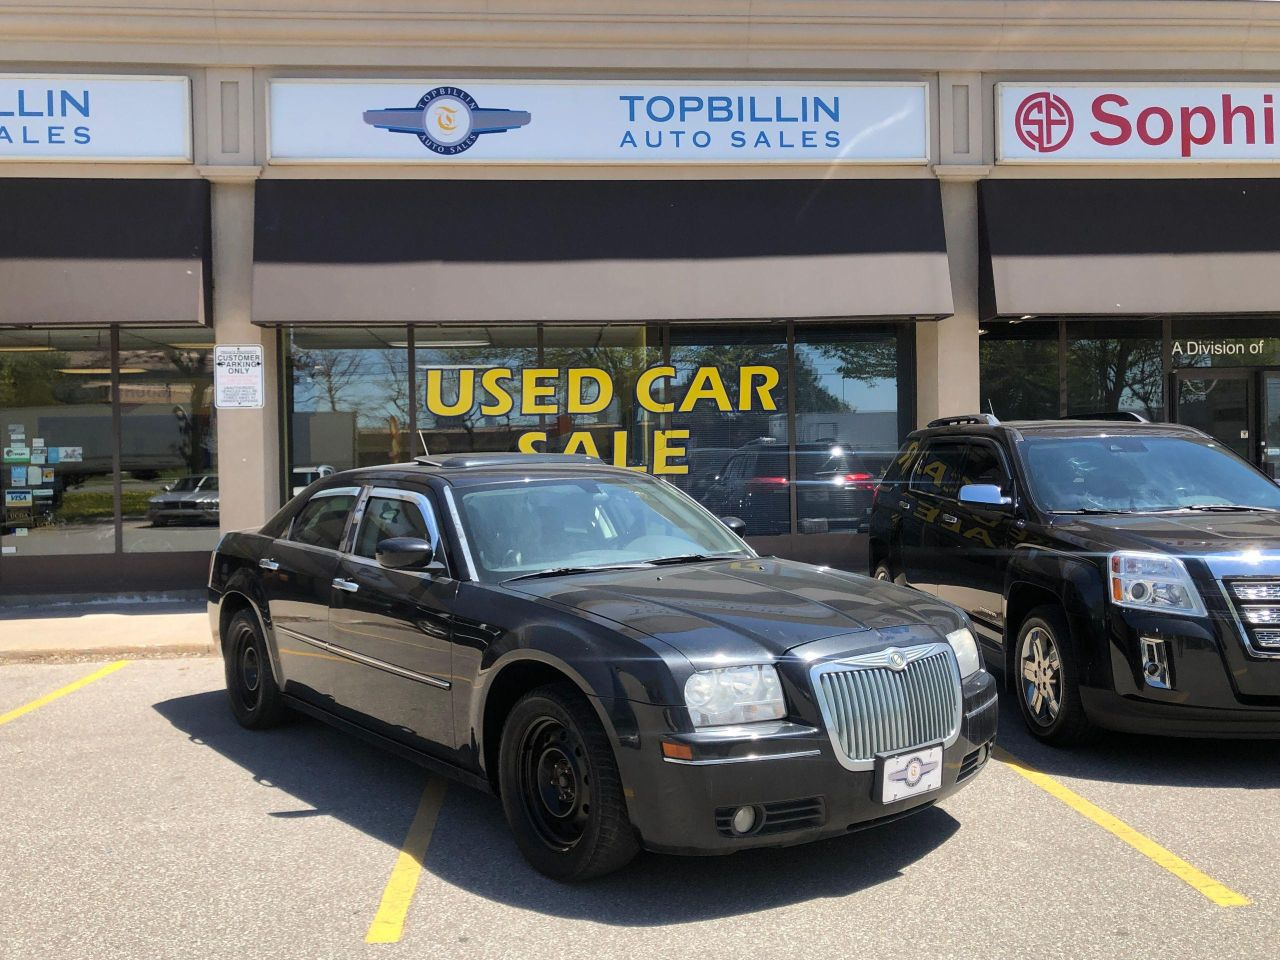 2008 Chrysler 300 Touring, Leather, Roof